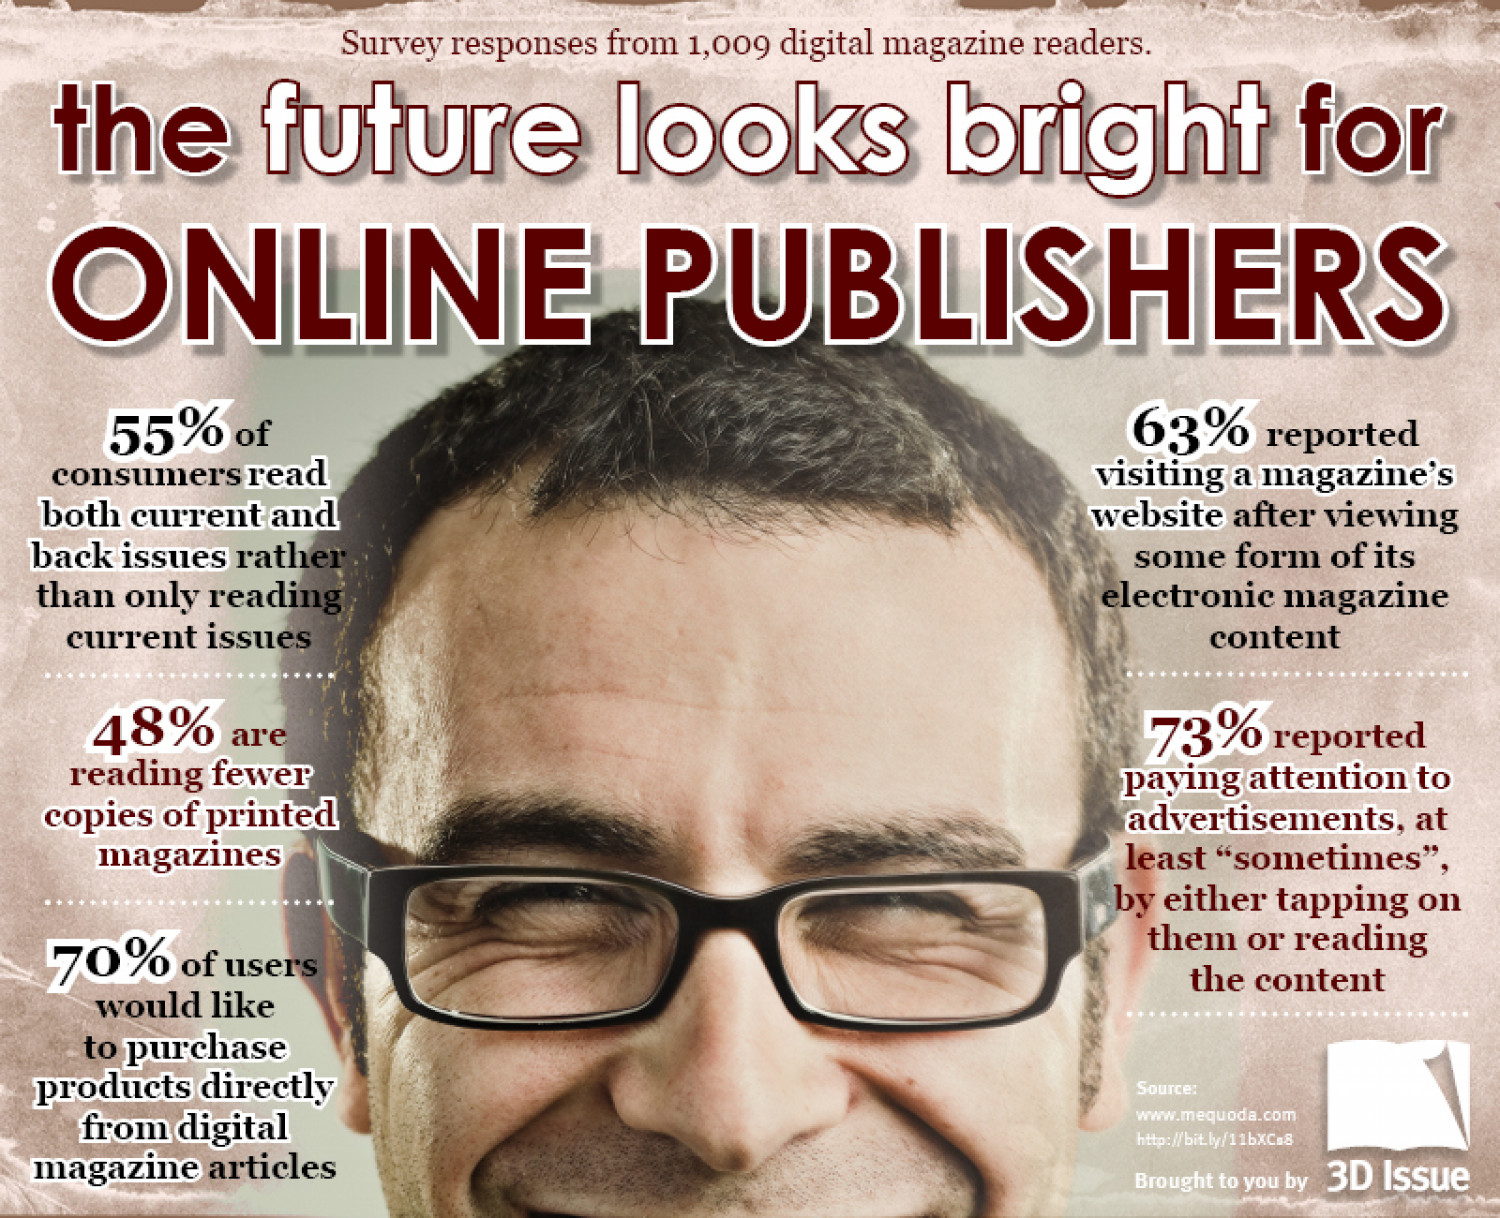 The Future Looks Bright for Online Publishers Infographic